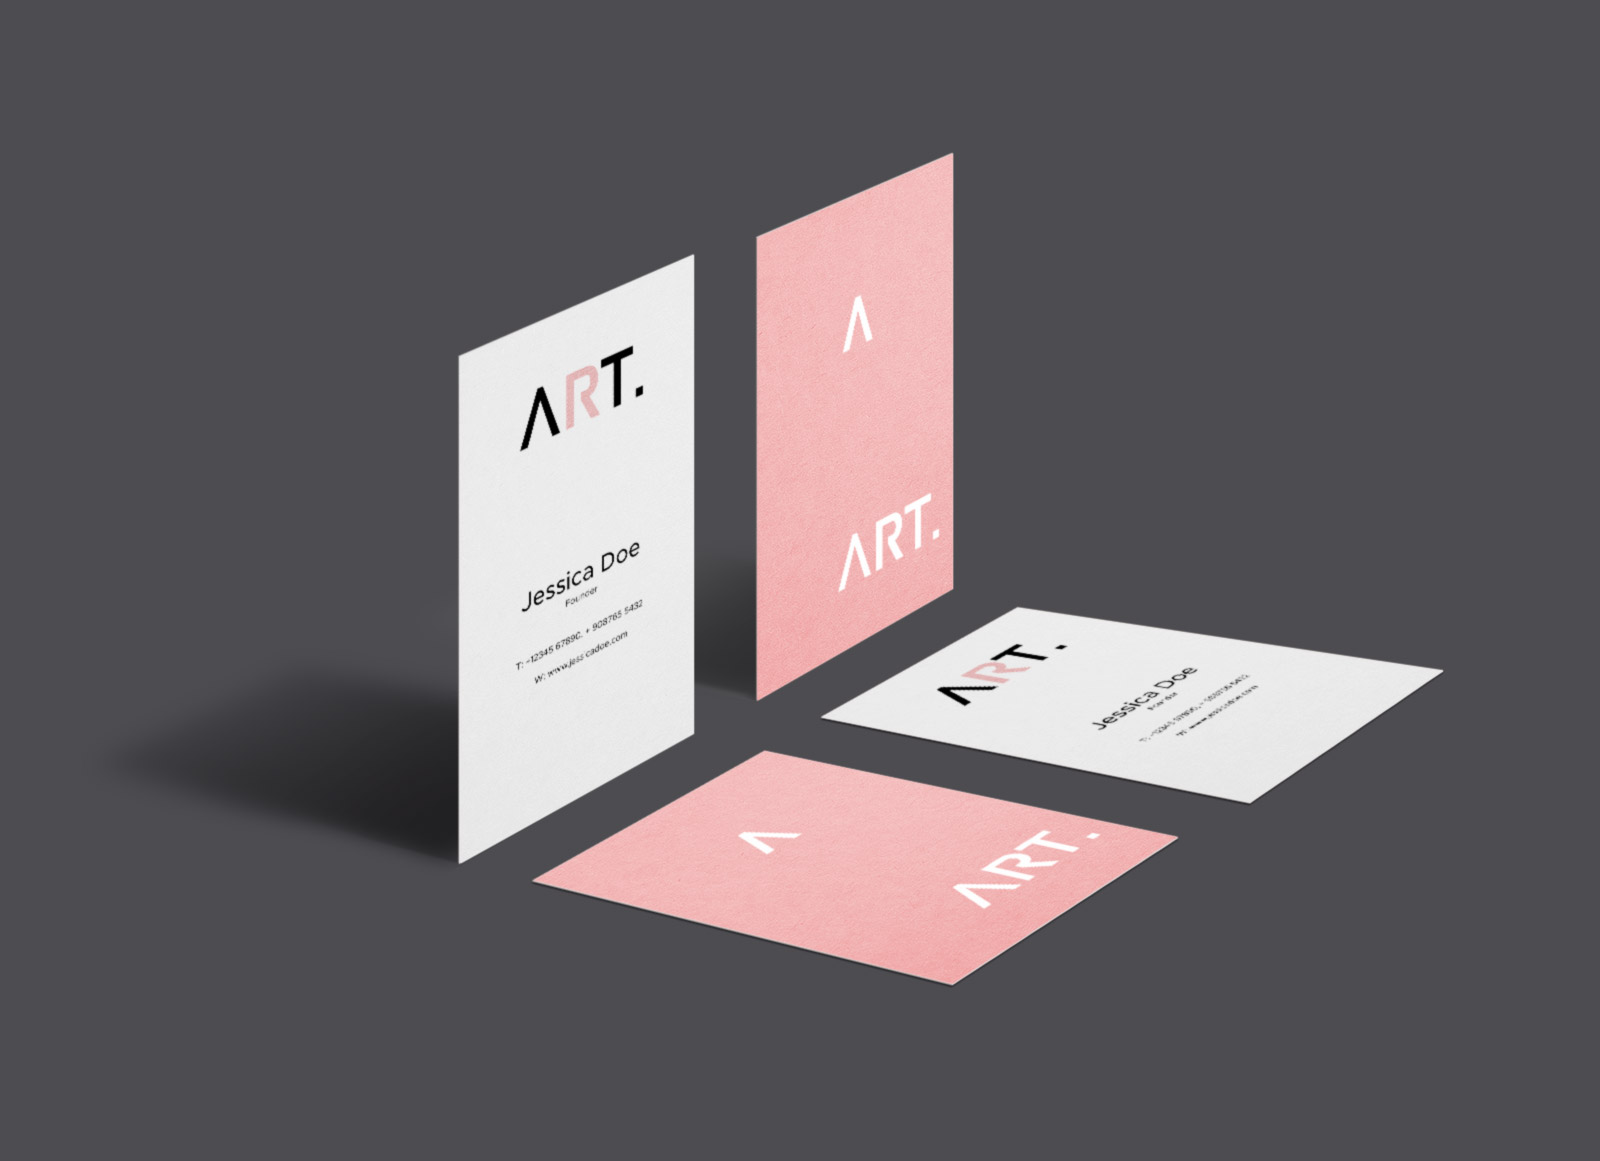 Free Vertical Perspective Business Card Mockup PSD - Good Mockups